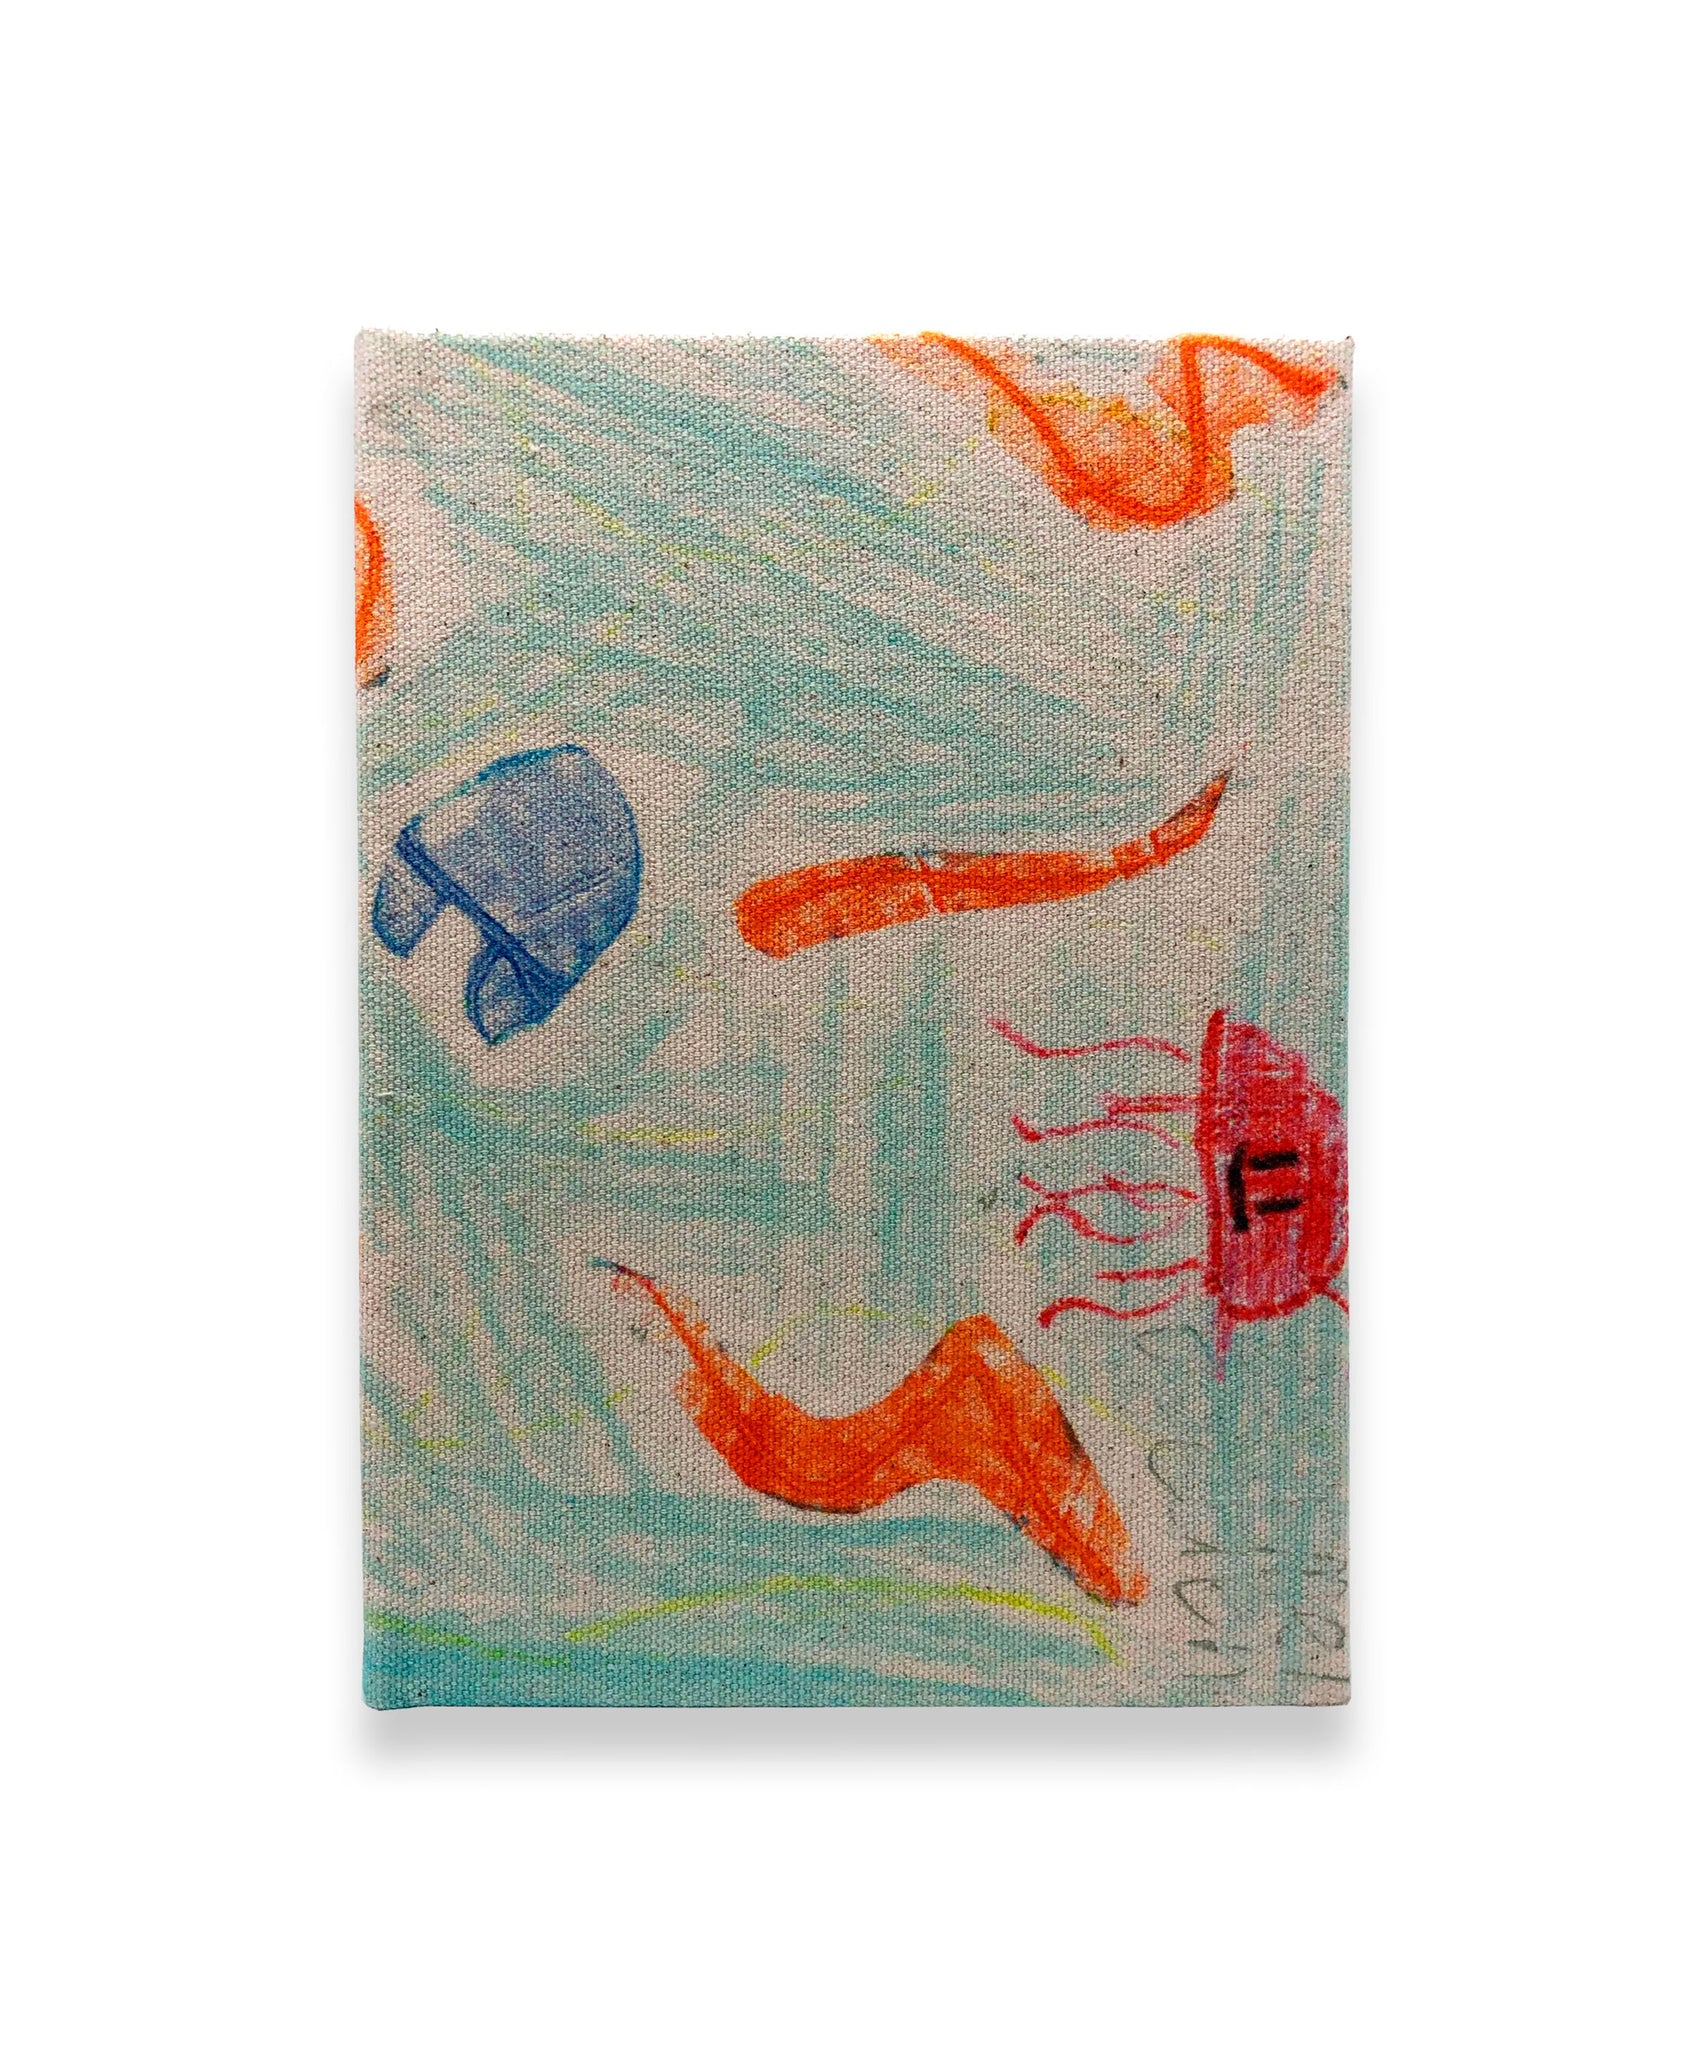 Our Plastic Oceans Notebook - by Aidan